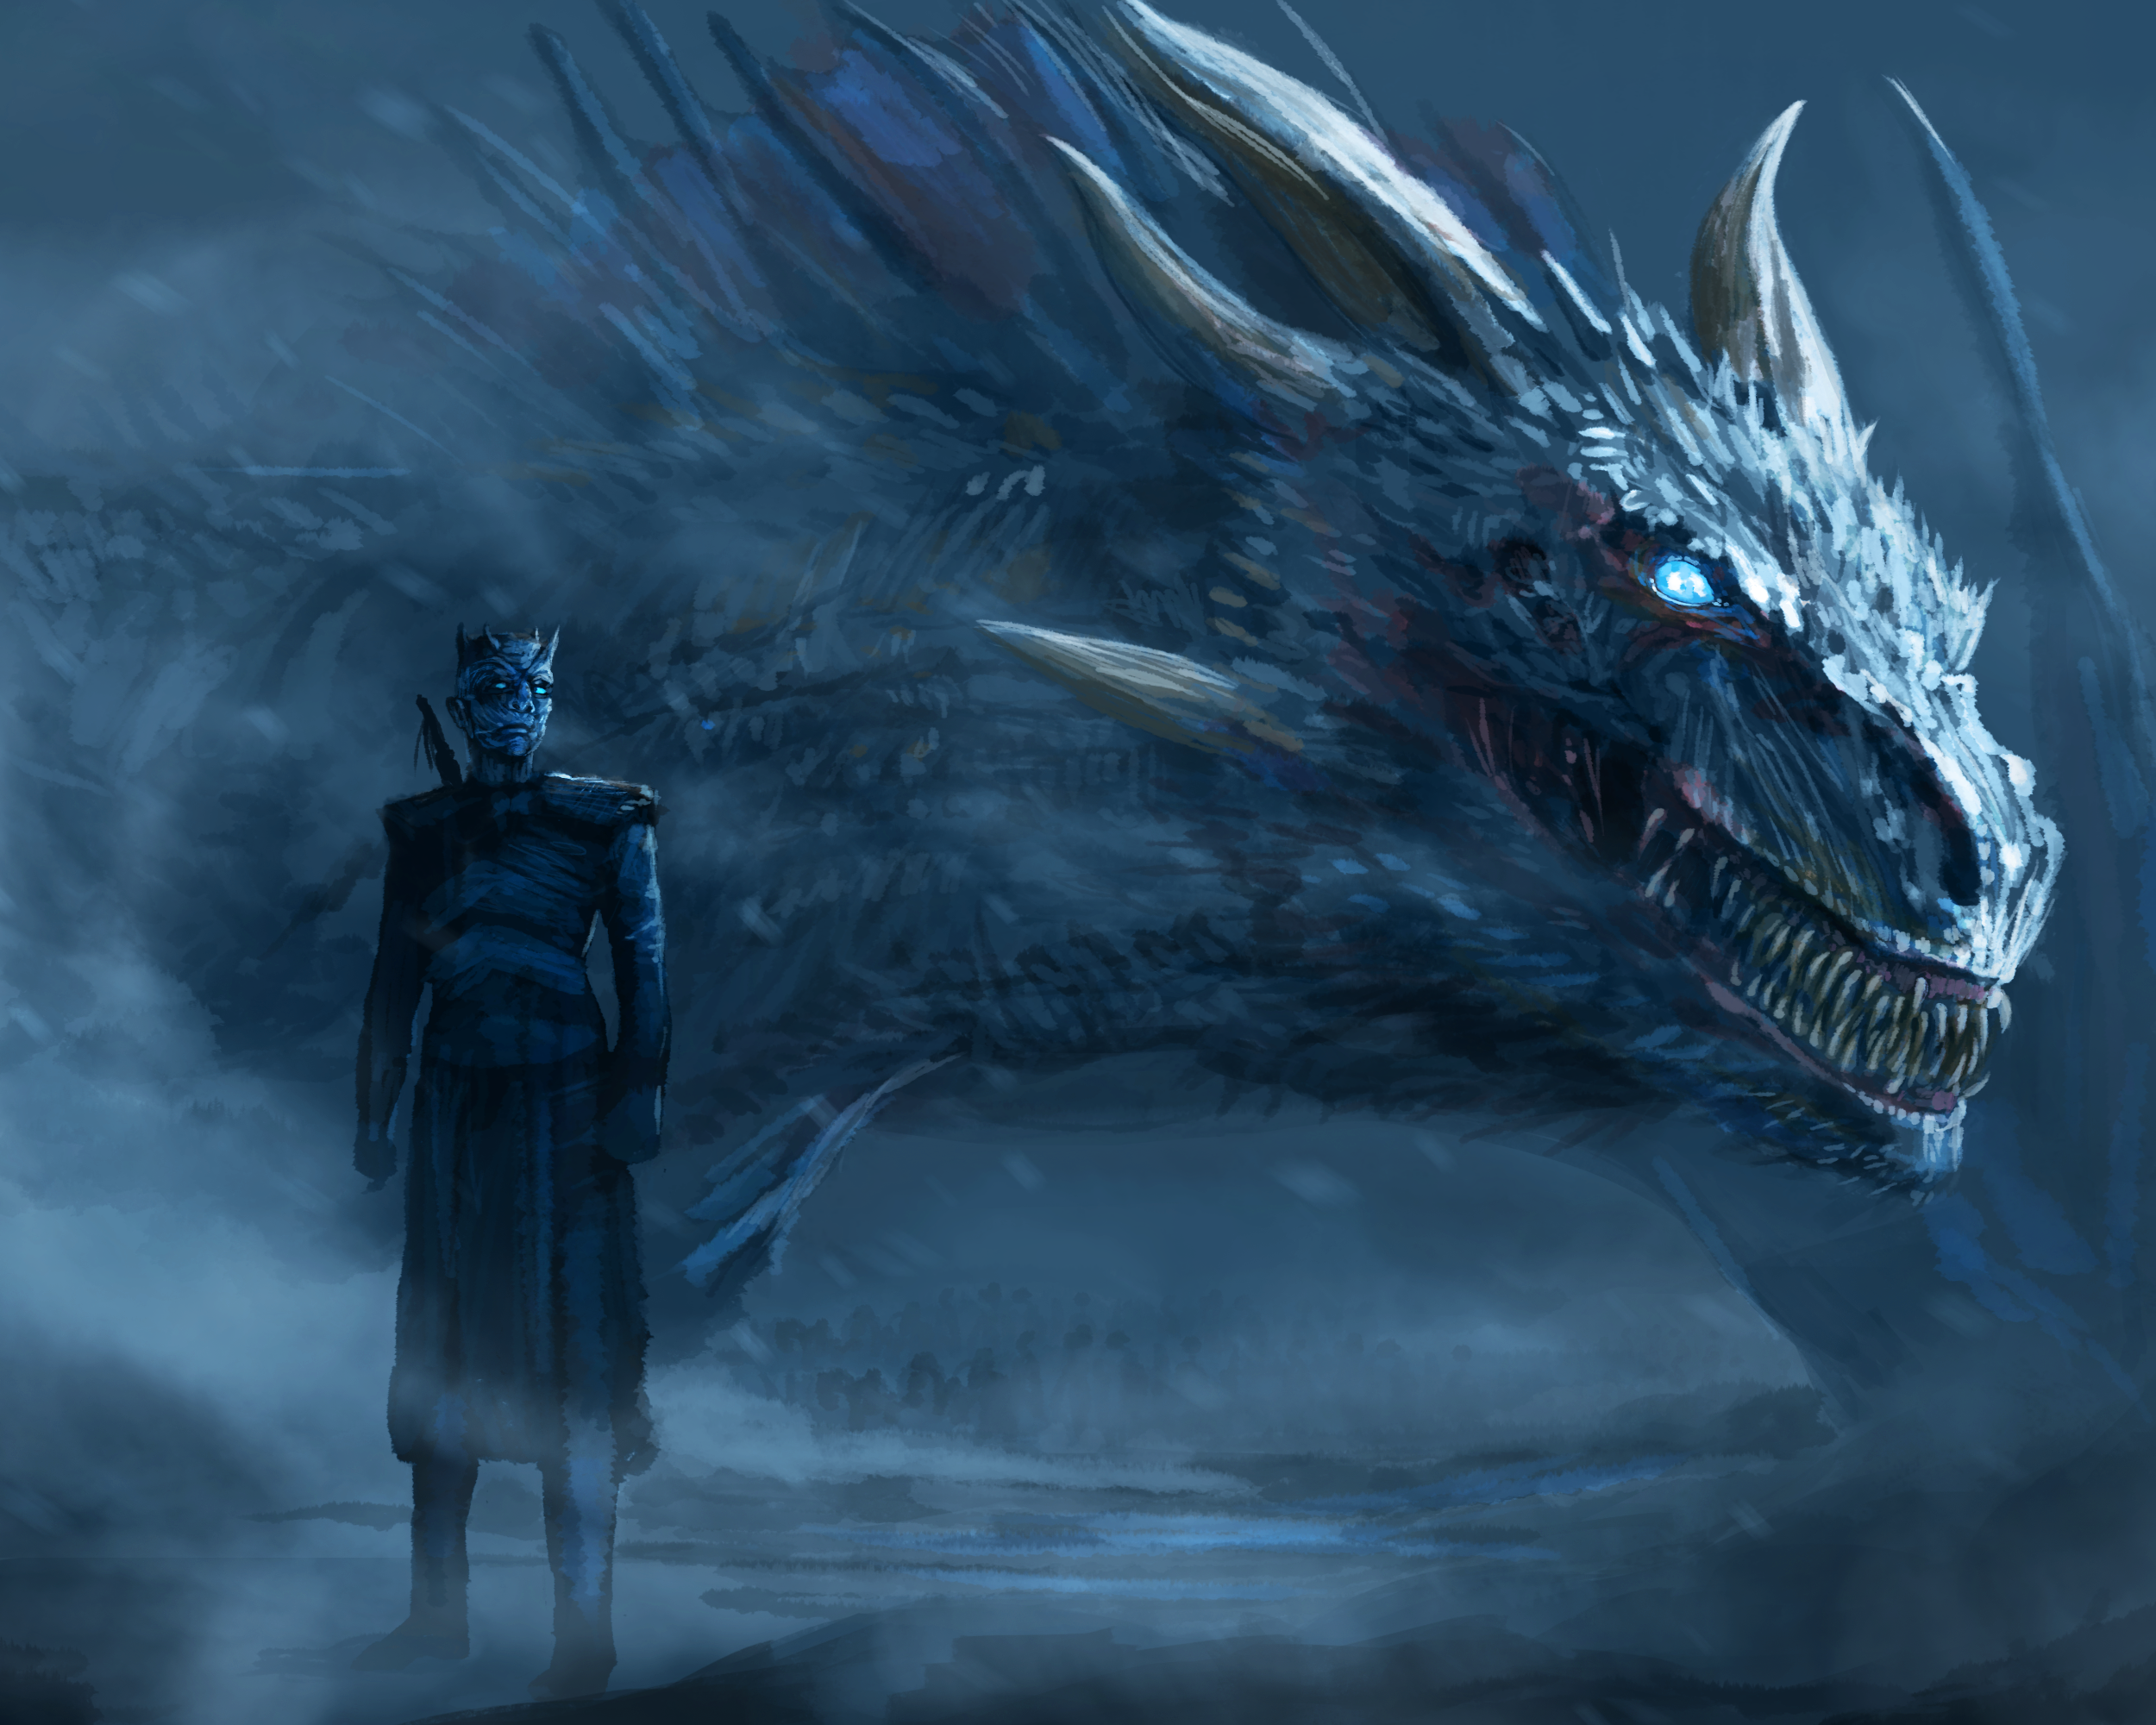 TV Şov - Game Of Thrones Night King (Game of Thrones) White Walker Ejderha - Walker PNG HD